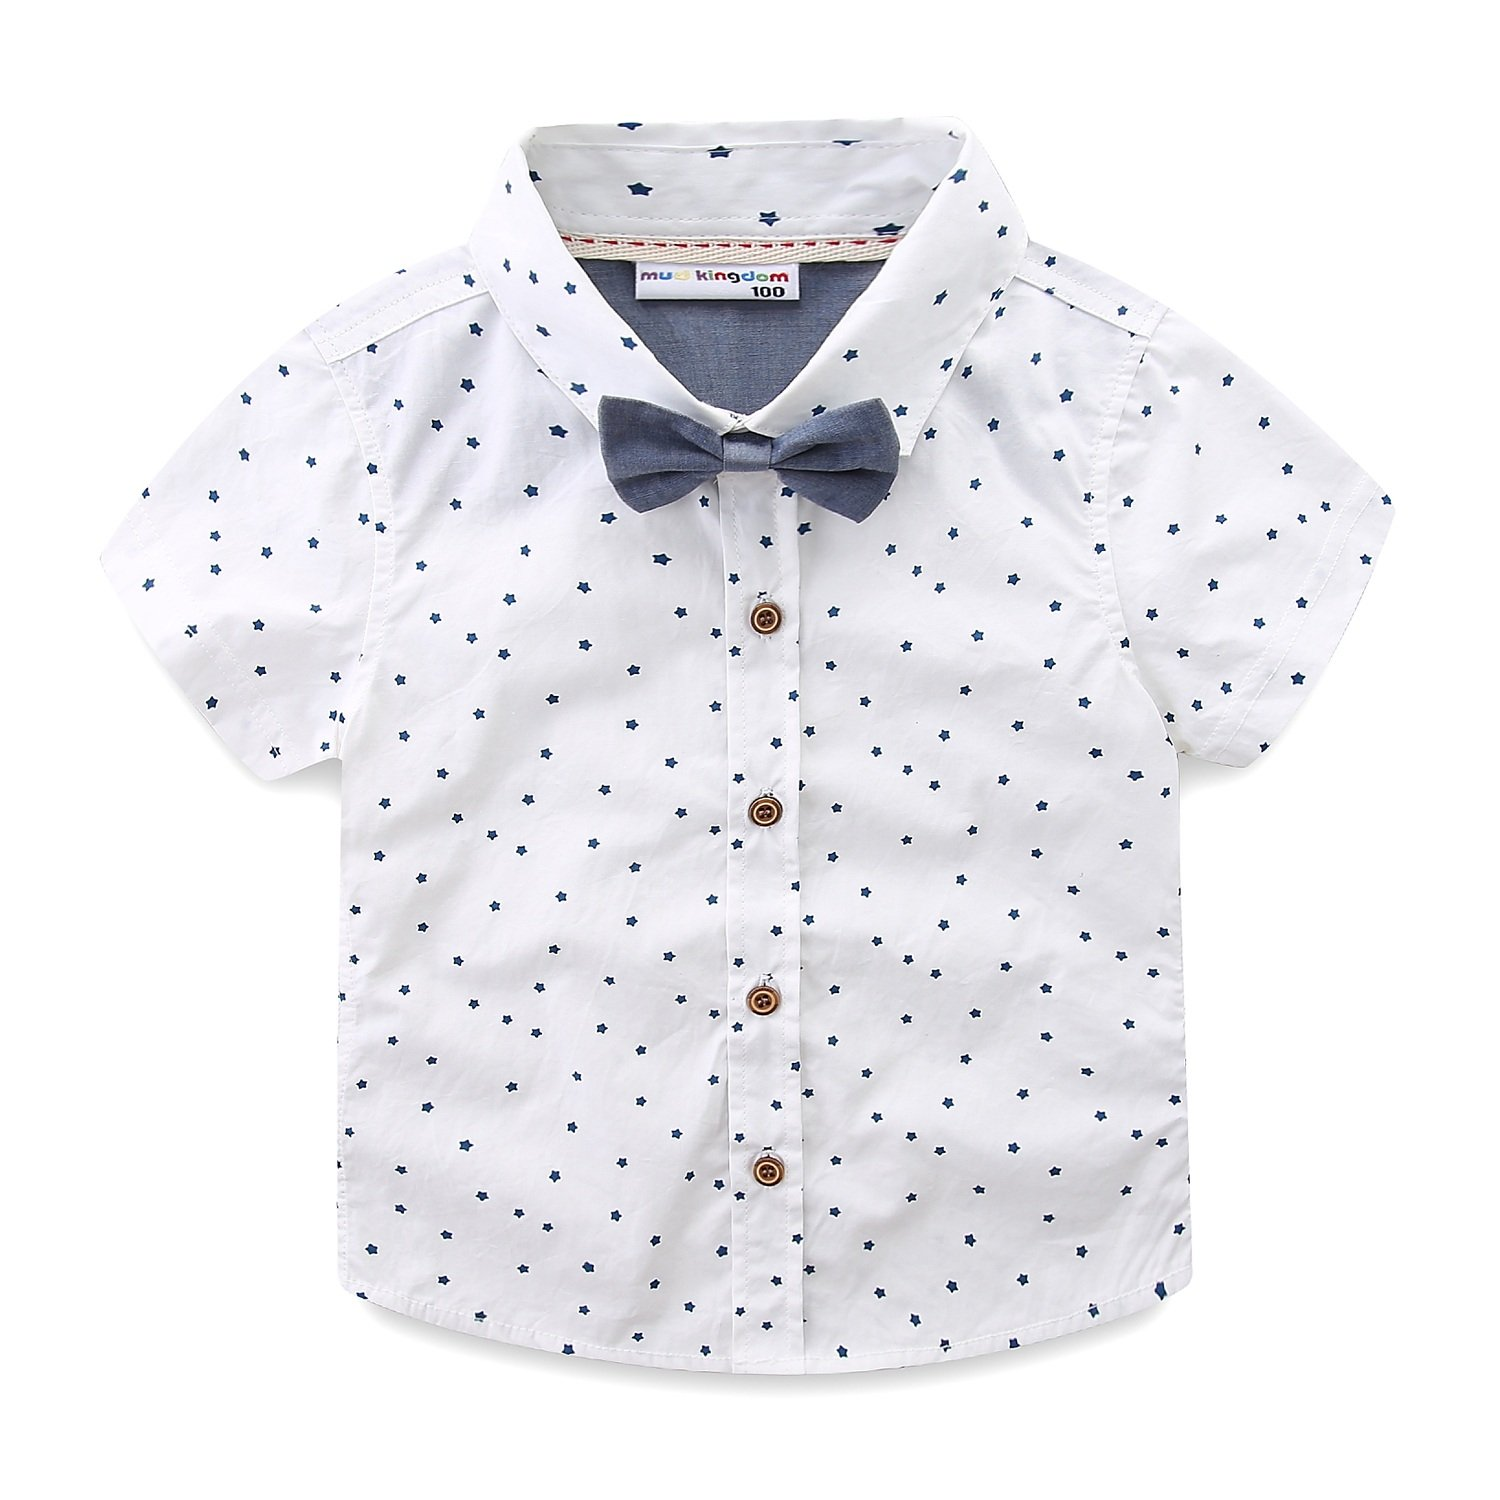 Mud Kingdom Toddler Boy Shirt and Tie Short Sleeve Stars 3T White